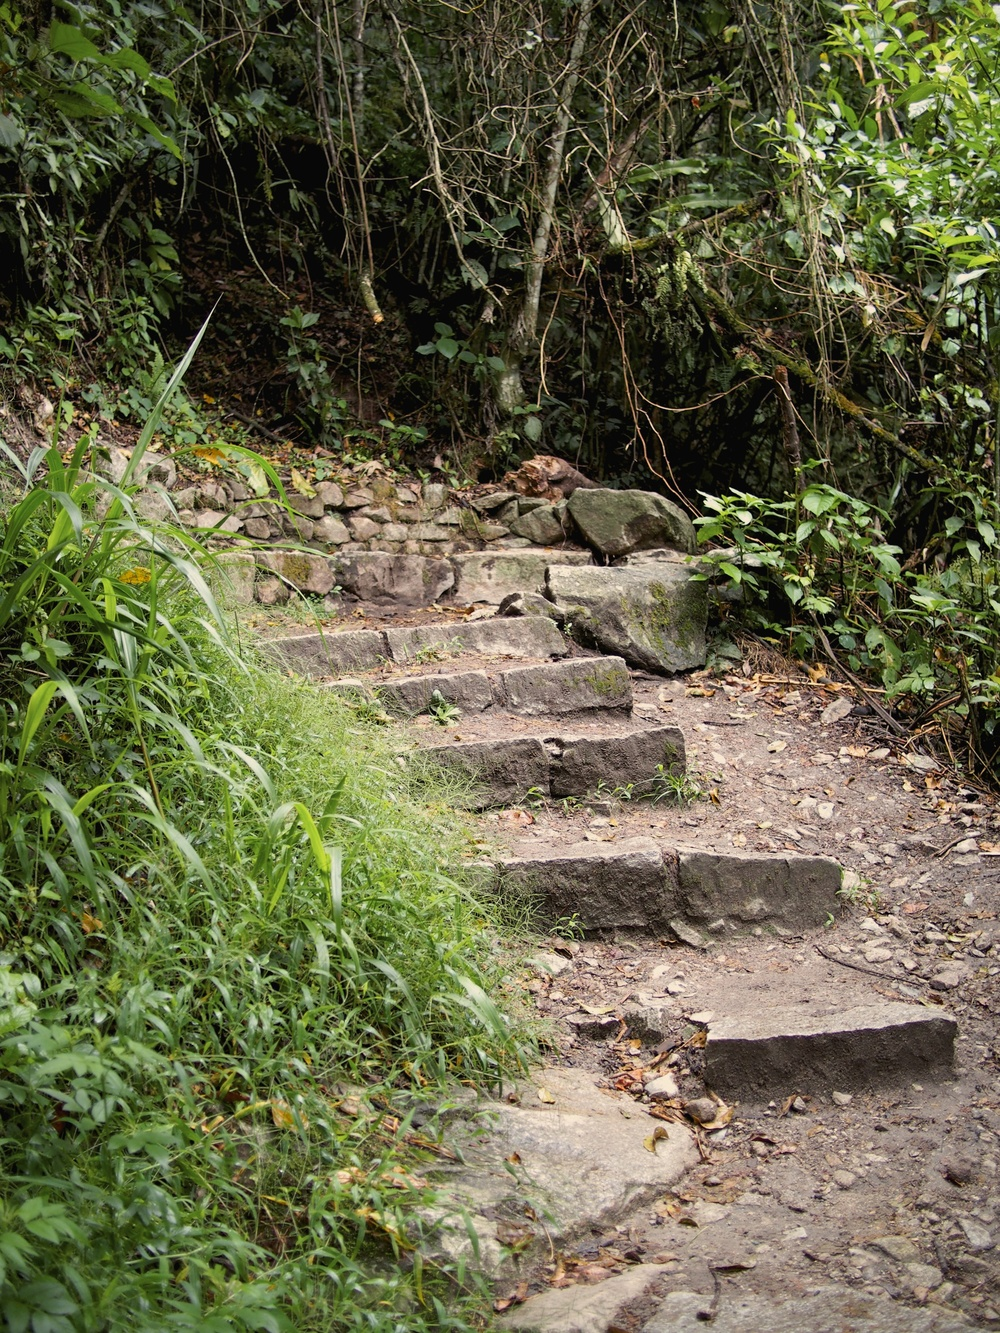 Where it all begins... up the Inca steps to Machu Picchu. We climbed these at 5 am in the rain (picture taken on the way down)